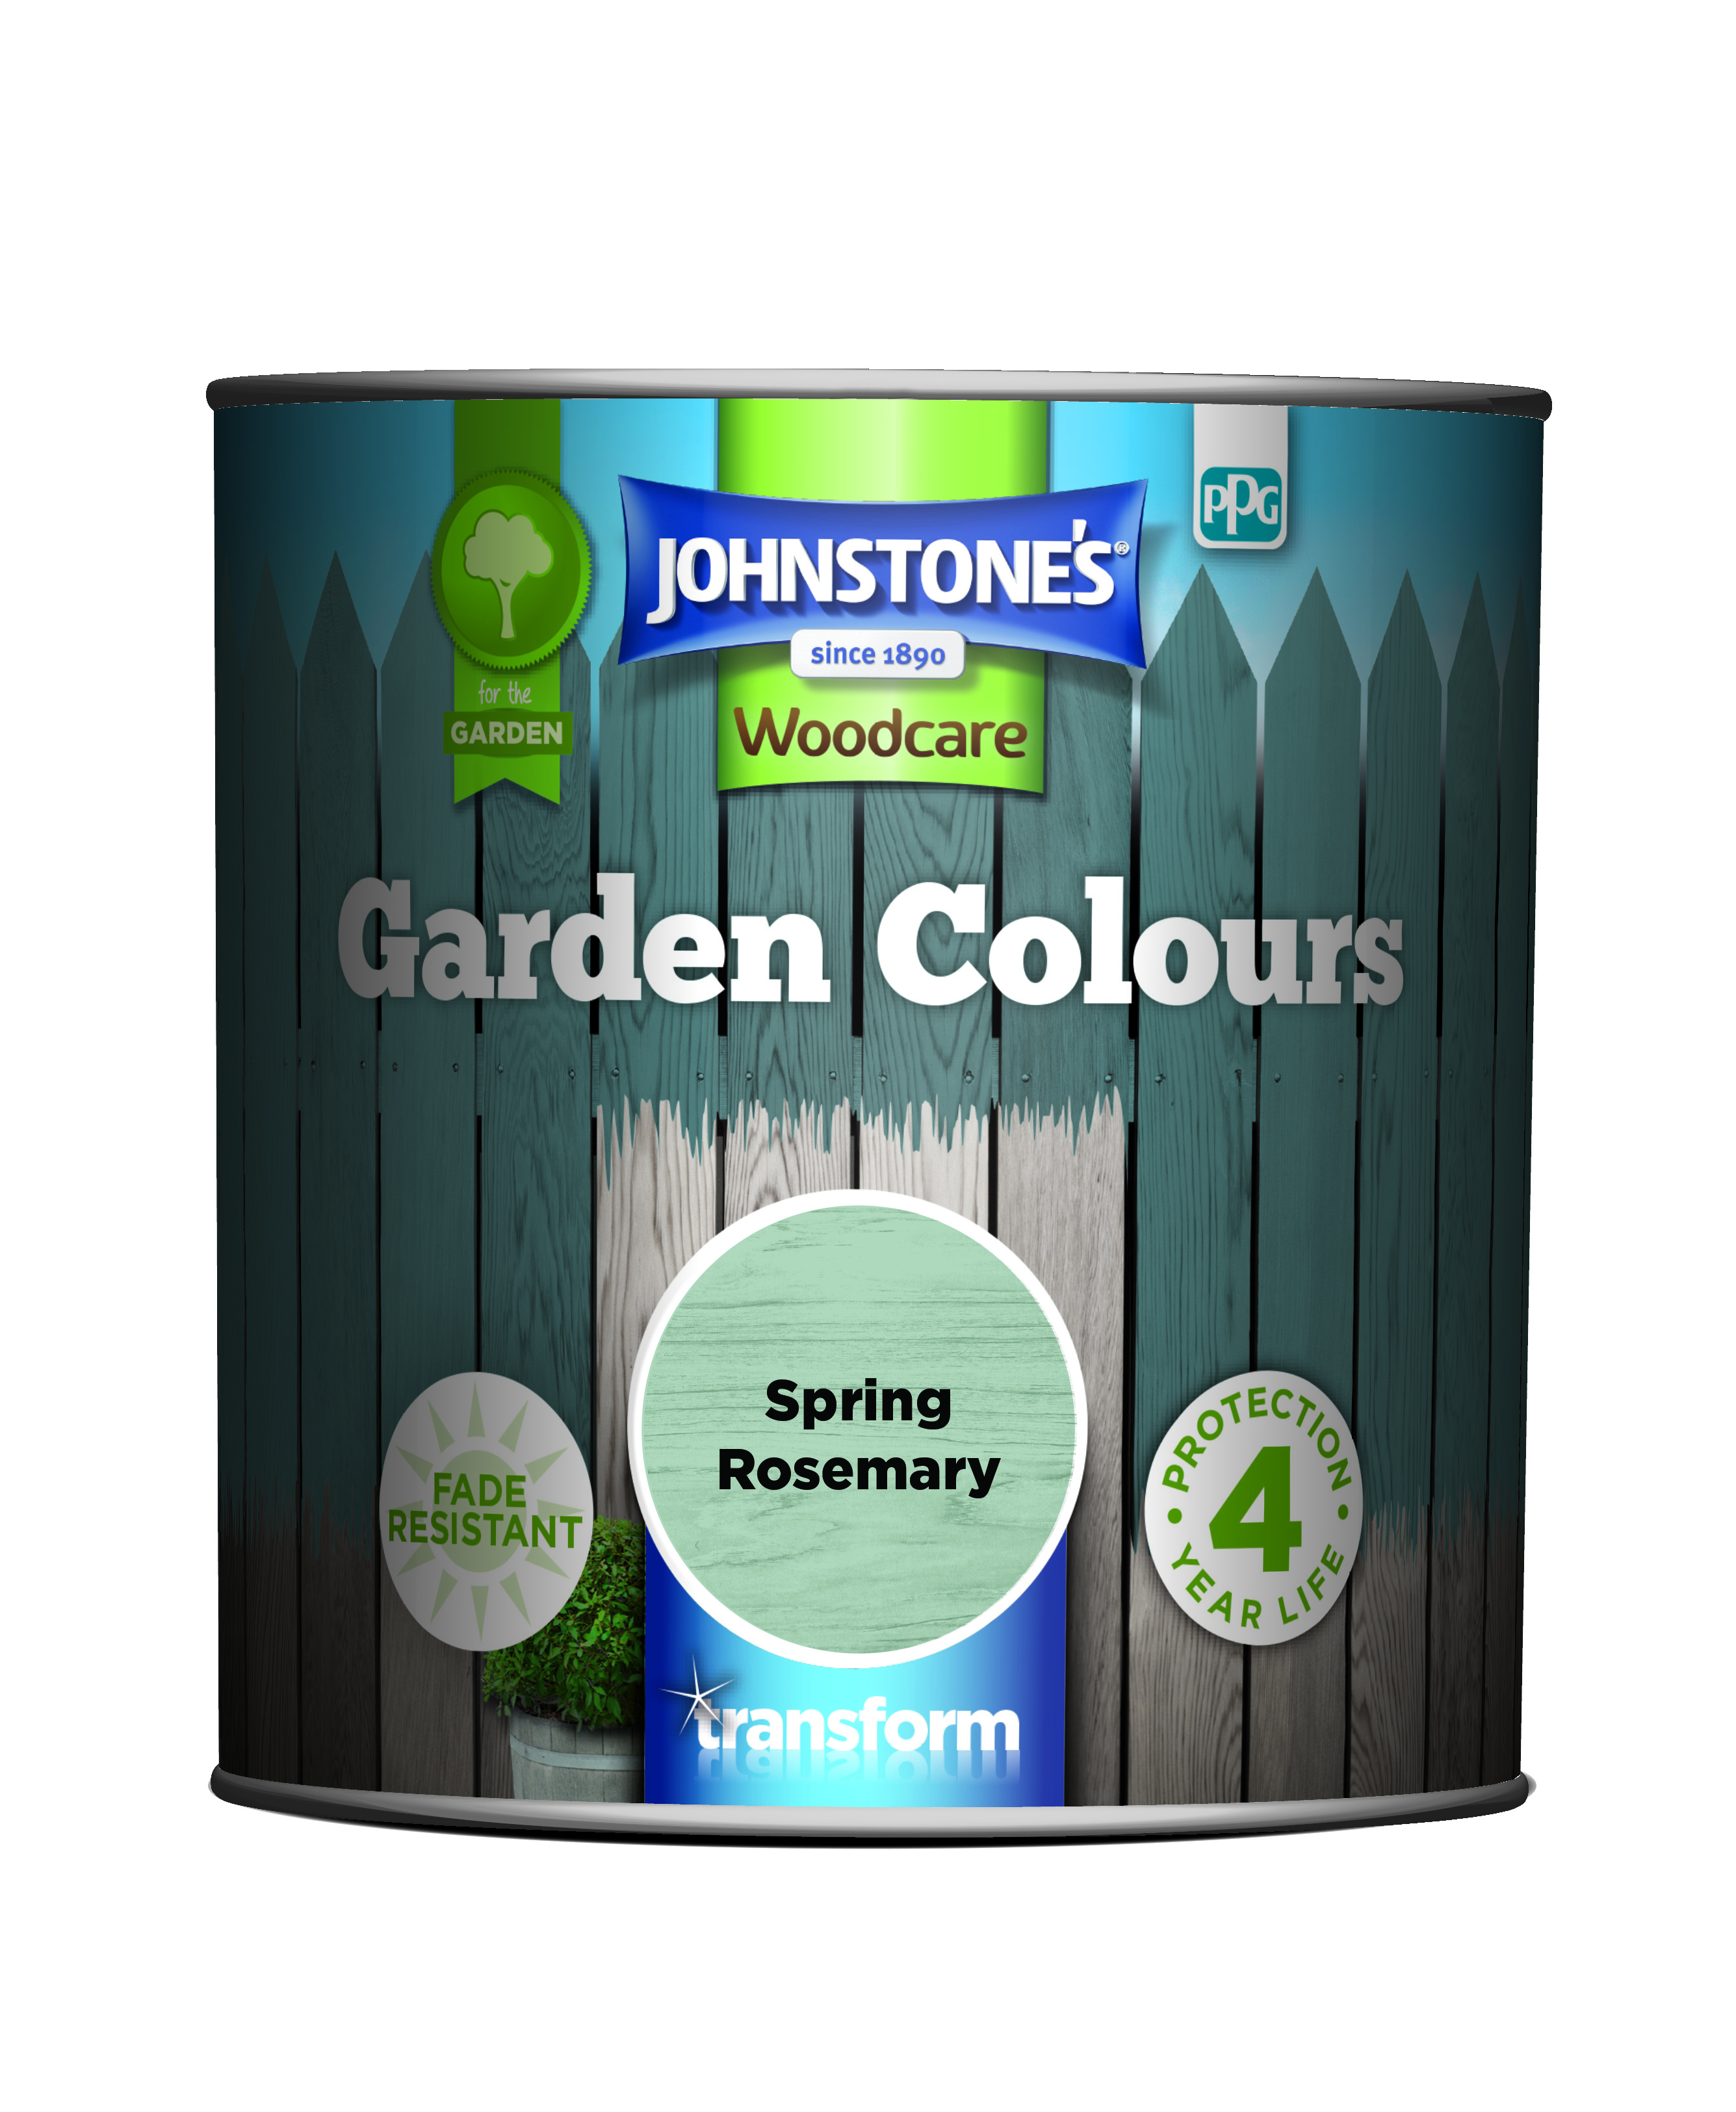 Johnstone's Garden Colours Spring Rosemary 1l